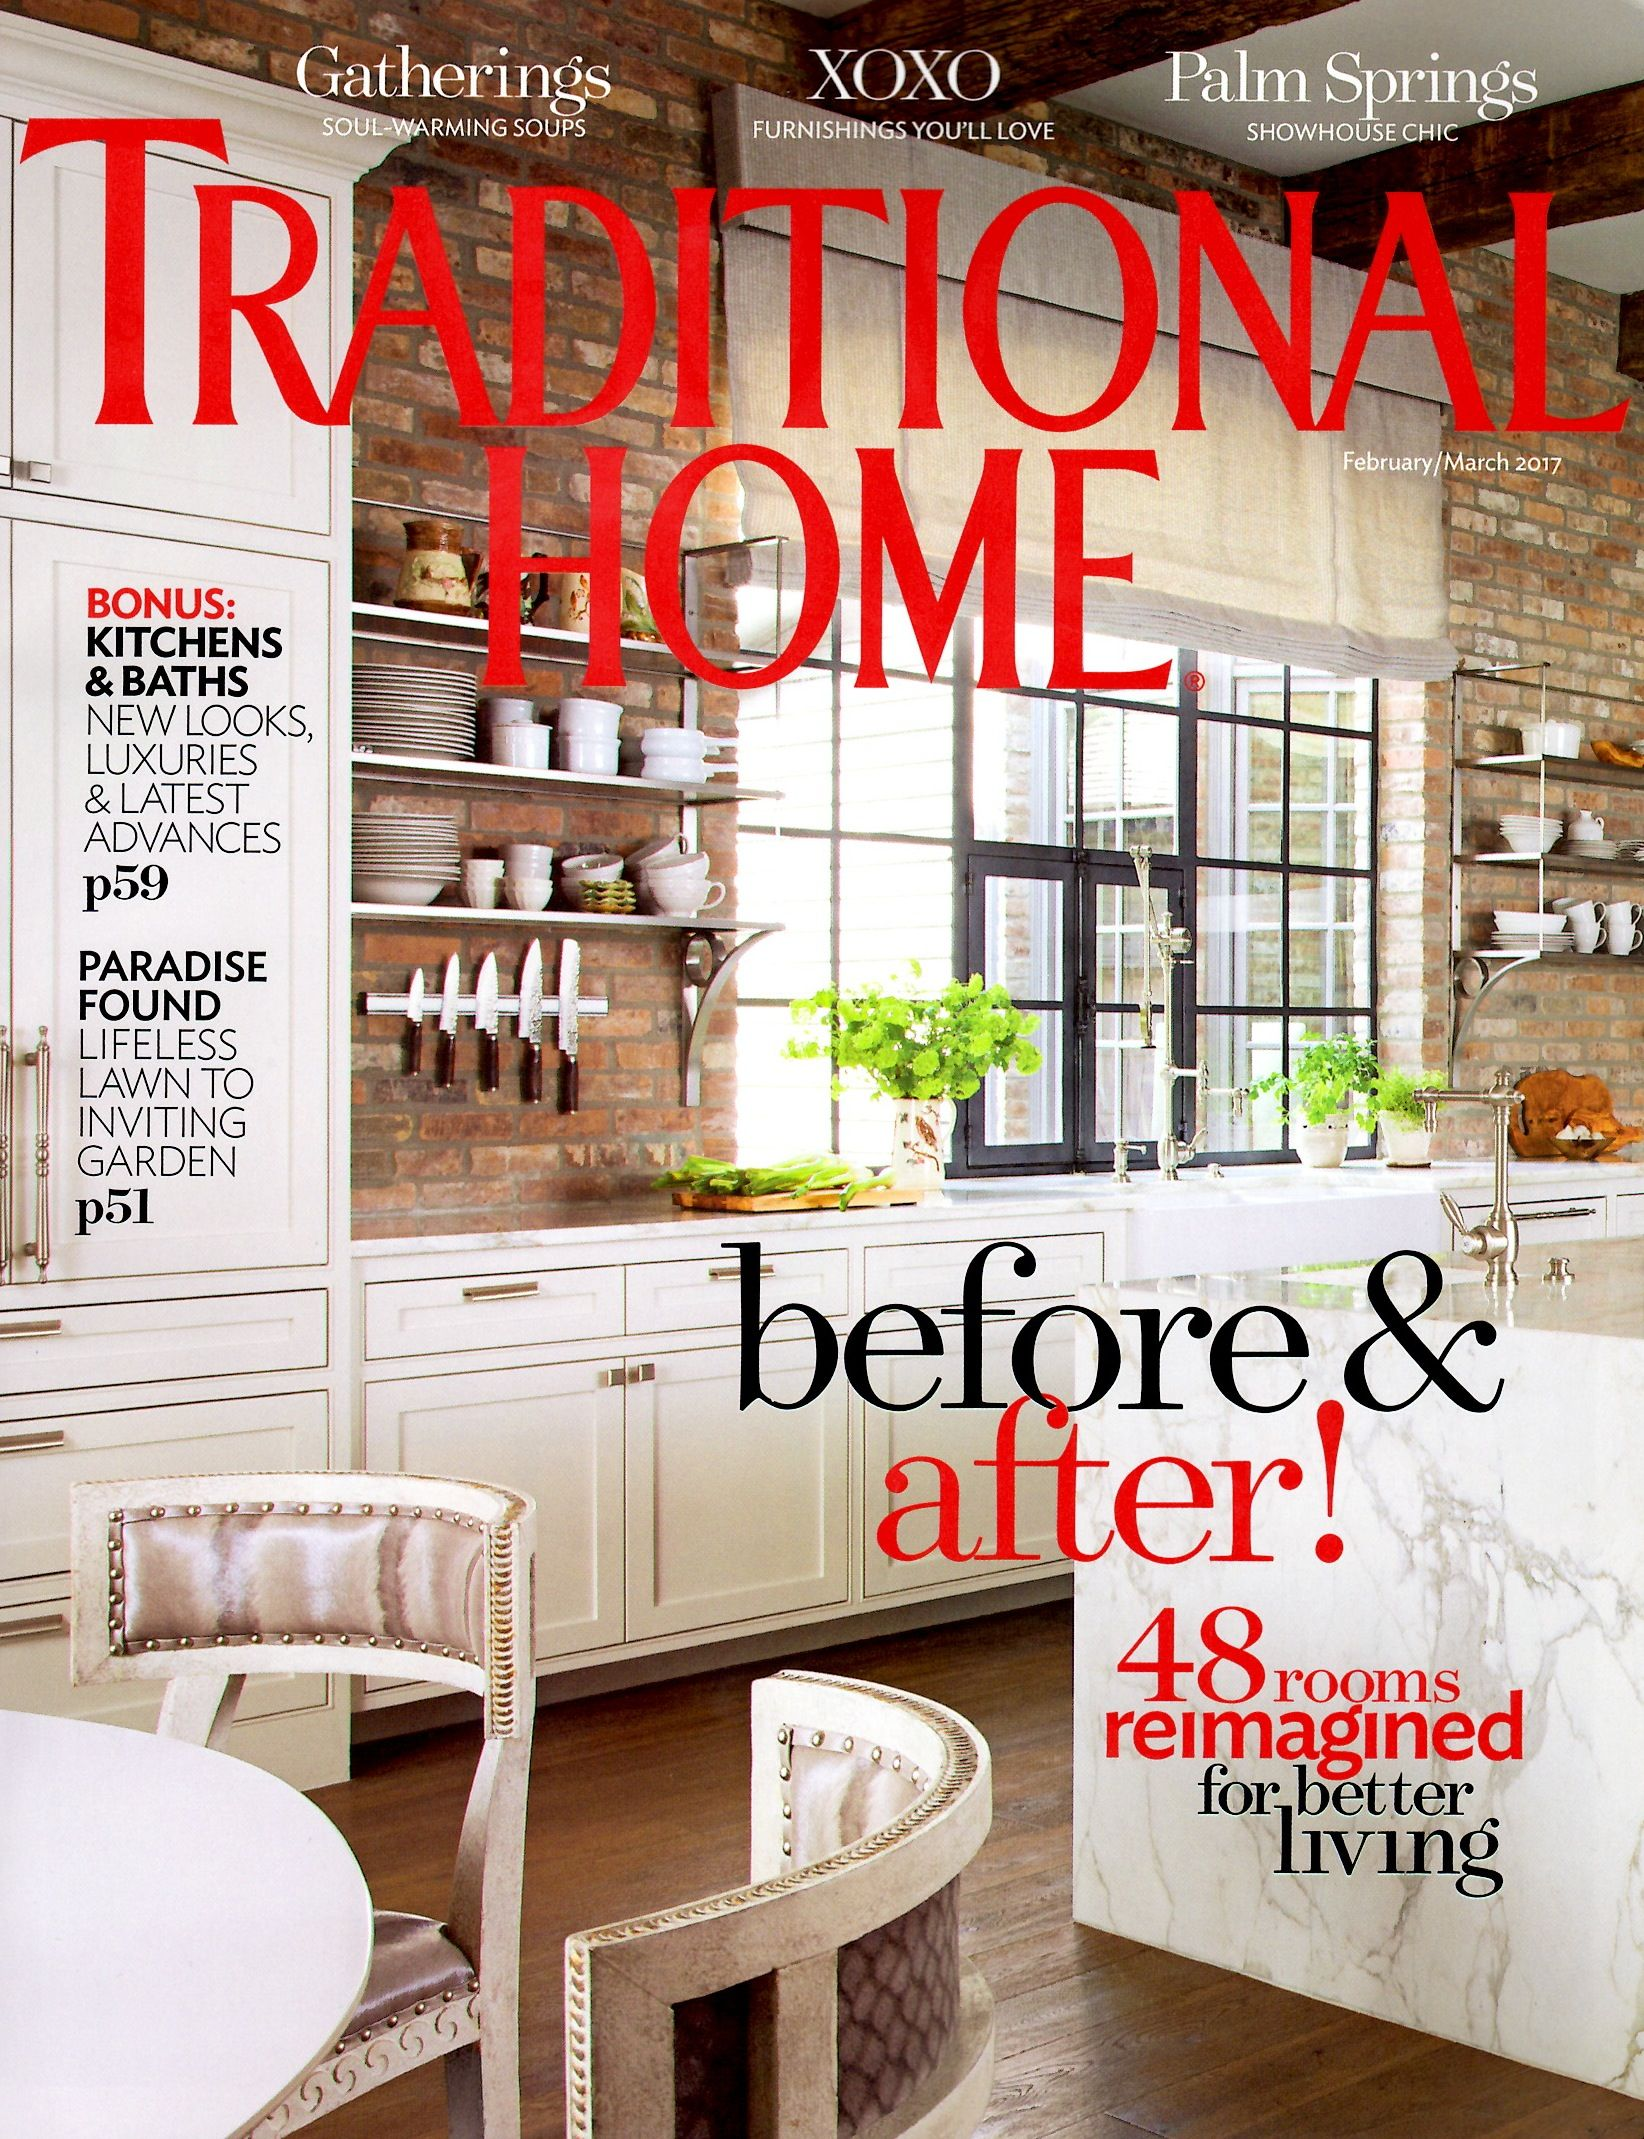 In the current issue of Traditional Home, I'm giving you